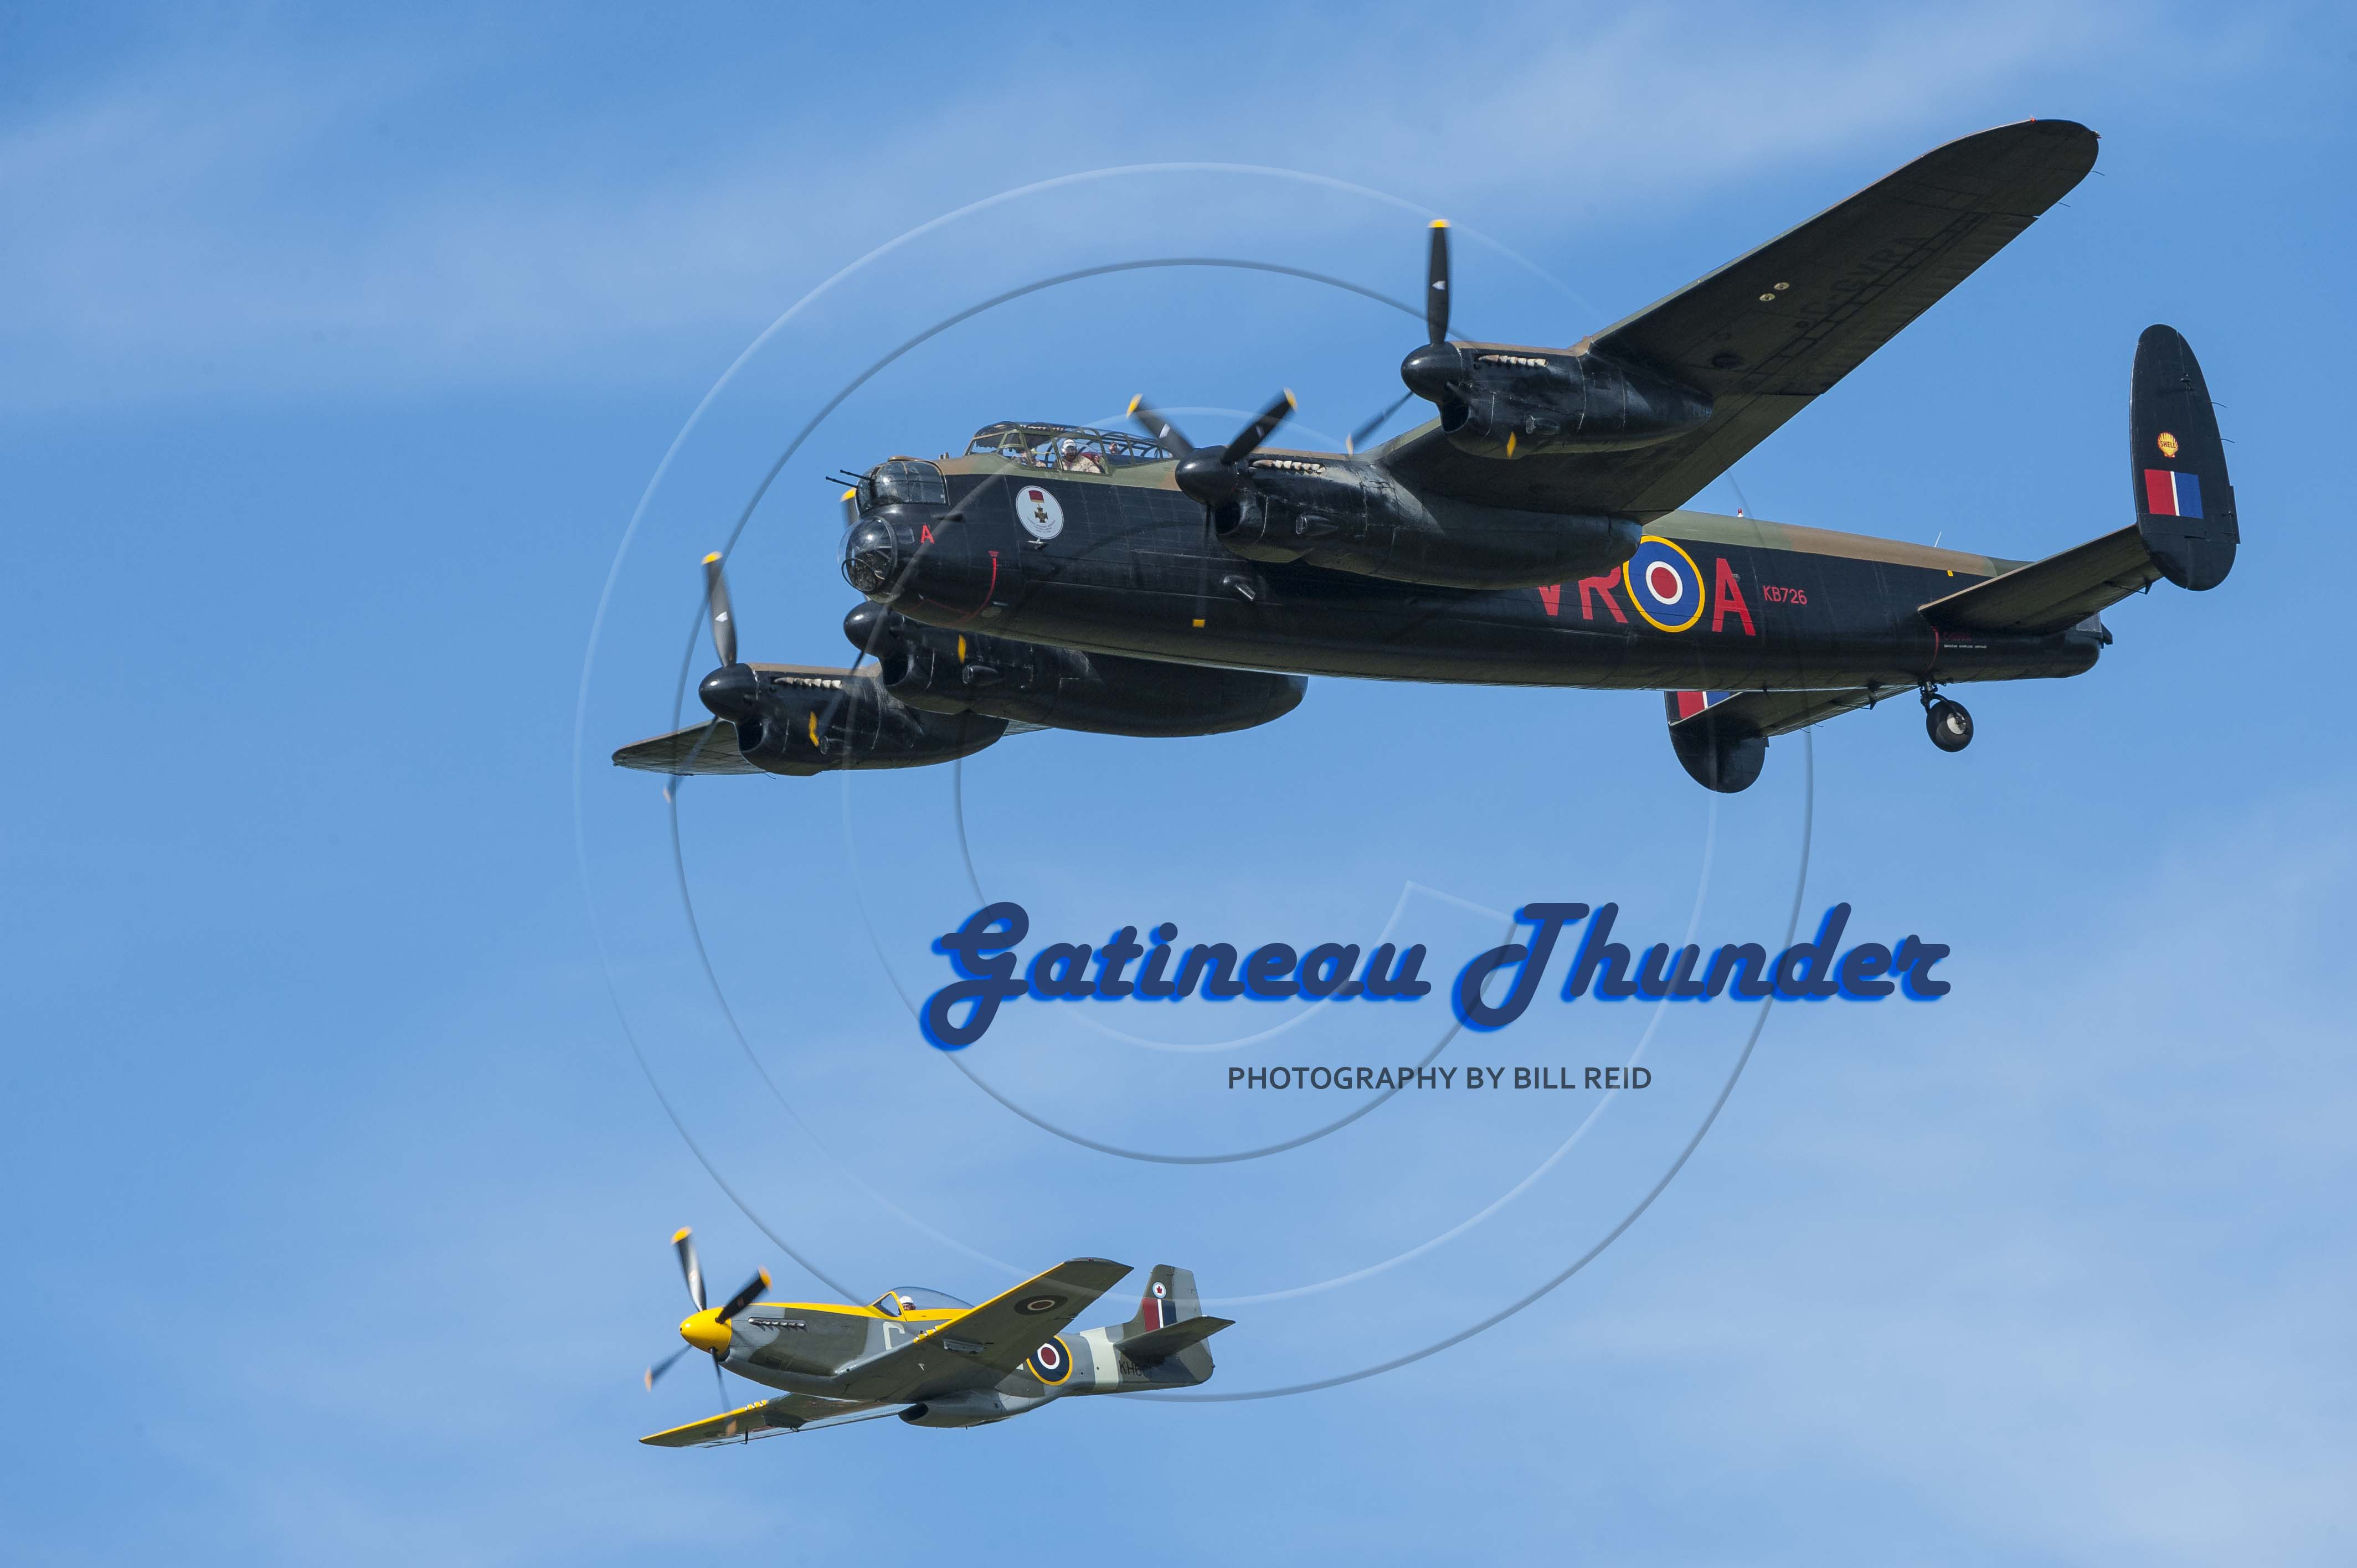 Gatineau Thunder Cover-1